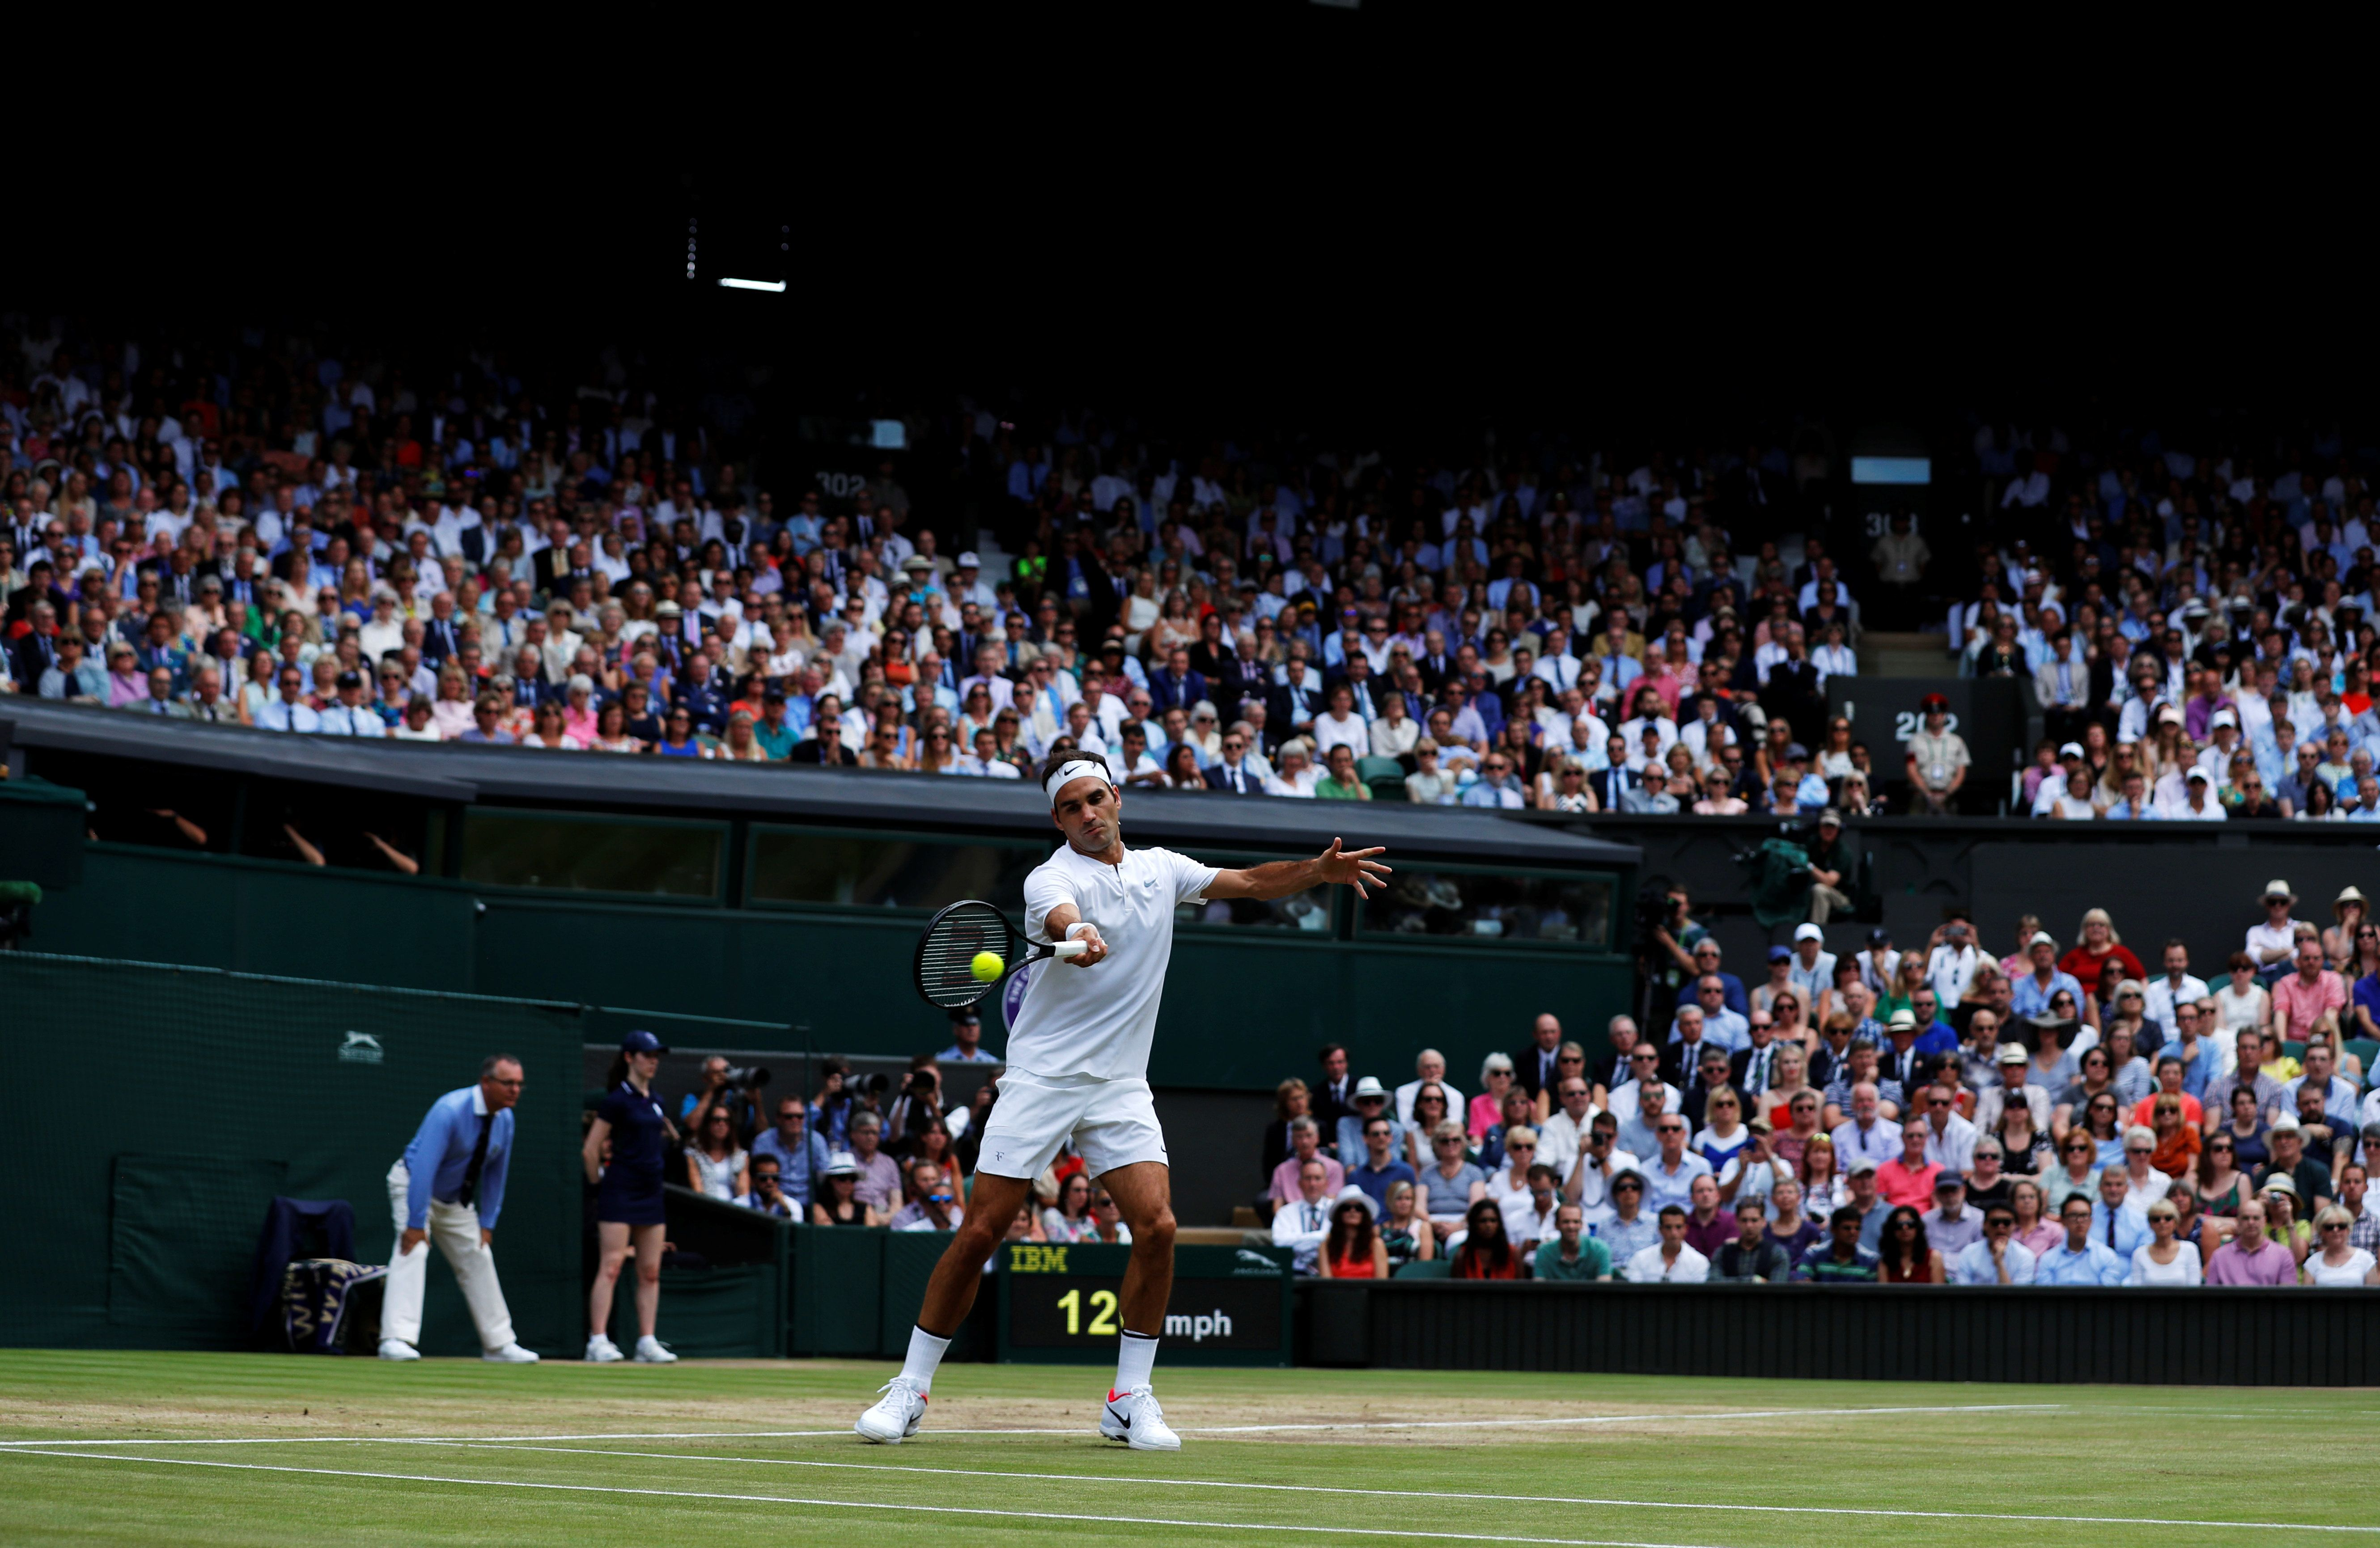 For The First Time The BBC Will Show Wimbledon In 4K HDR - Here's How You Can